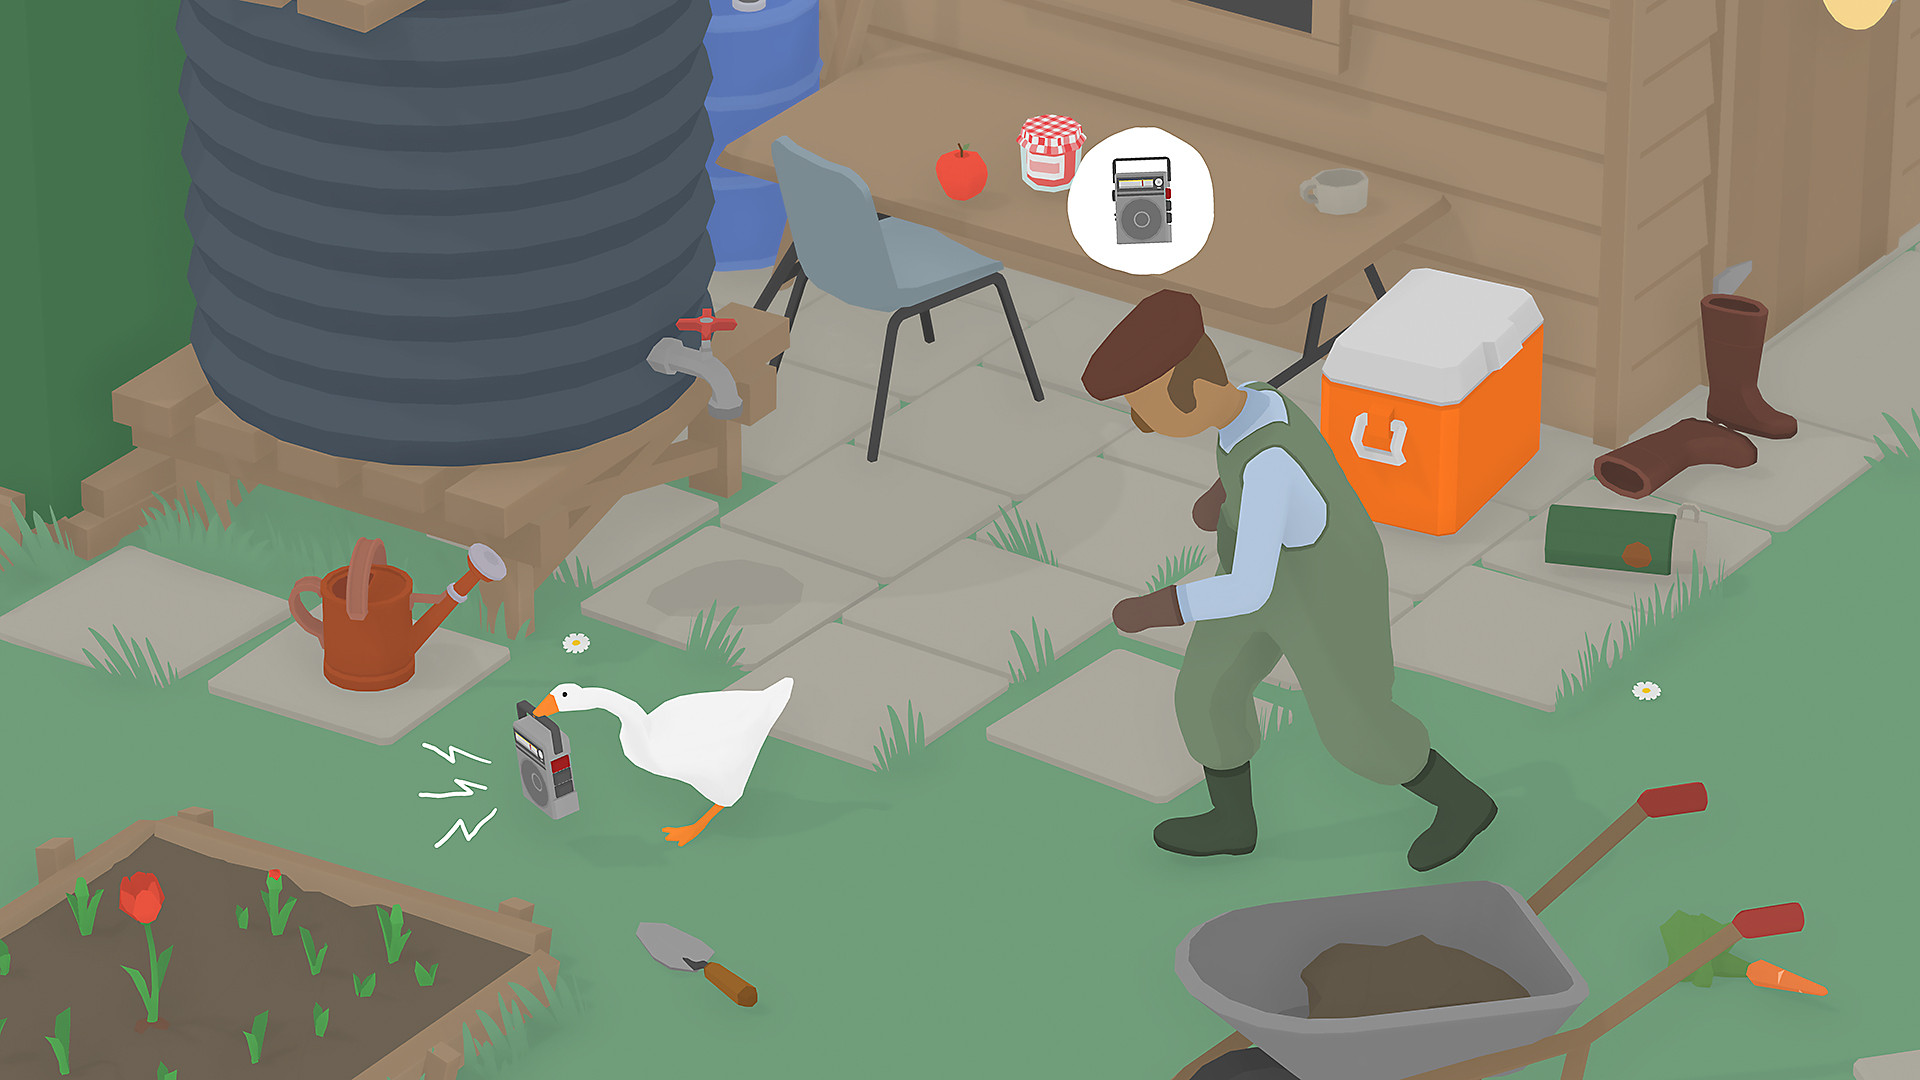 Untitled Goose Game in Action